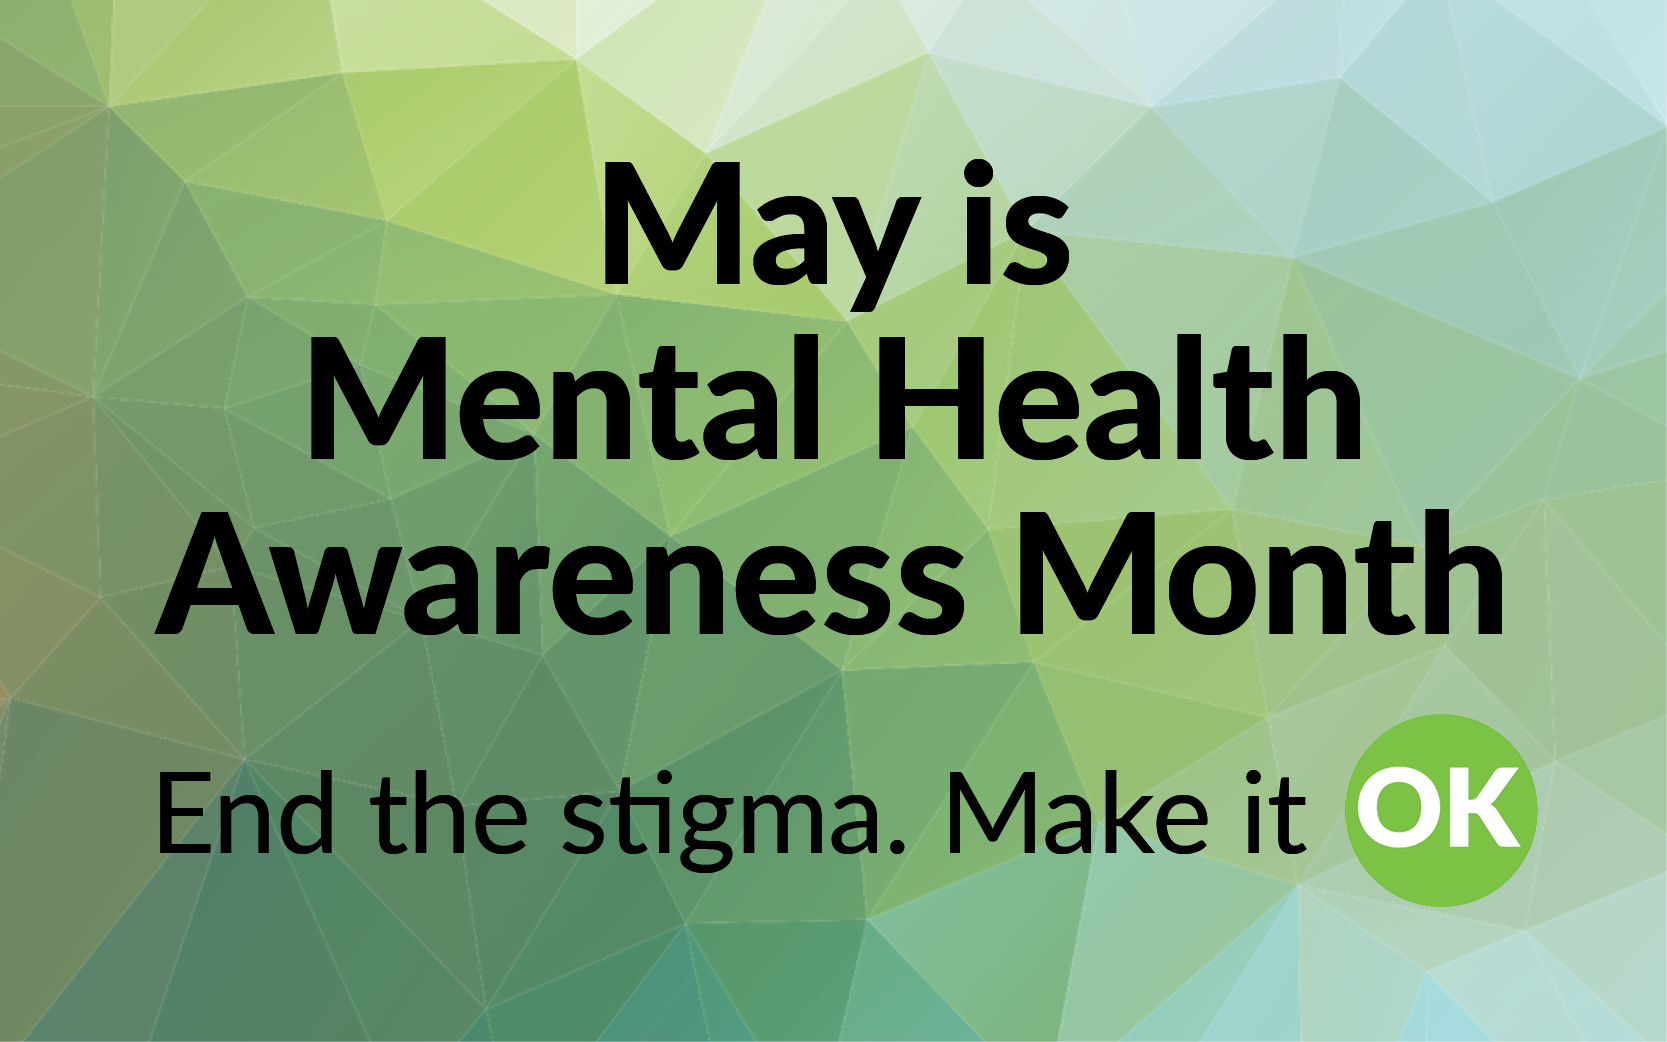 Mental Health Awareness Month 2021 Toolkit